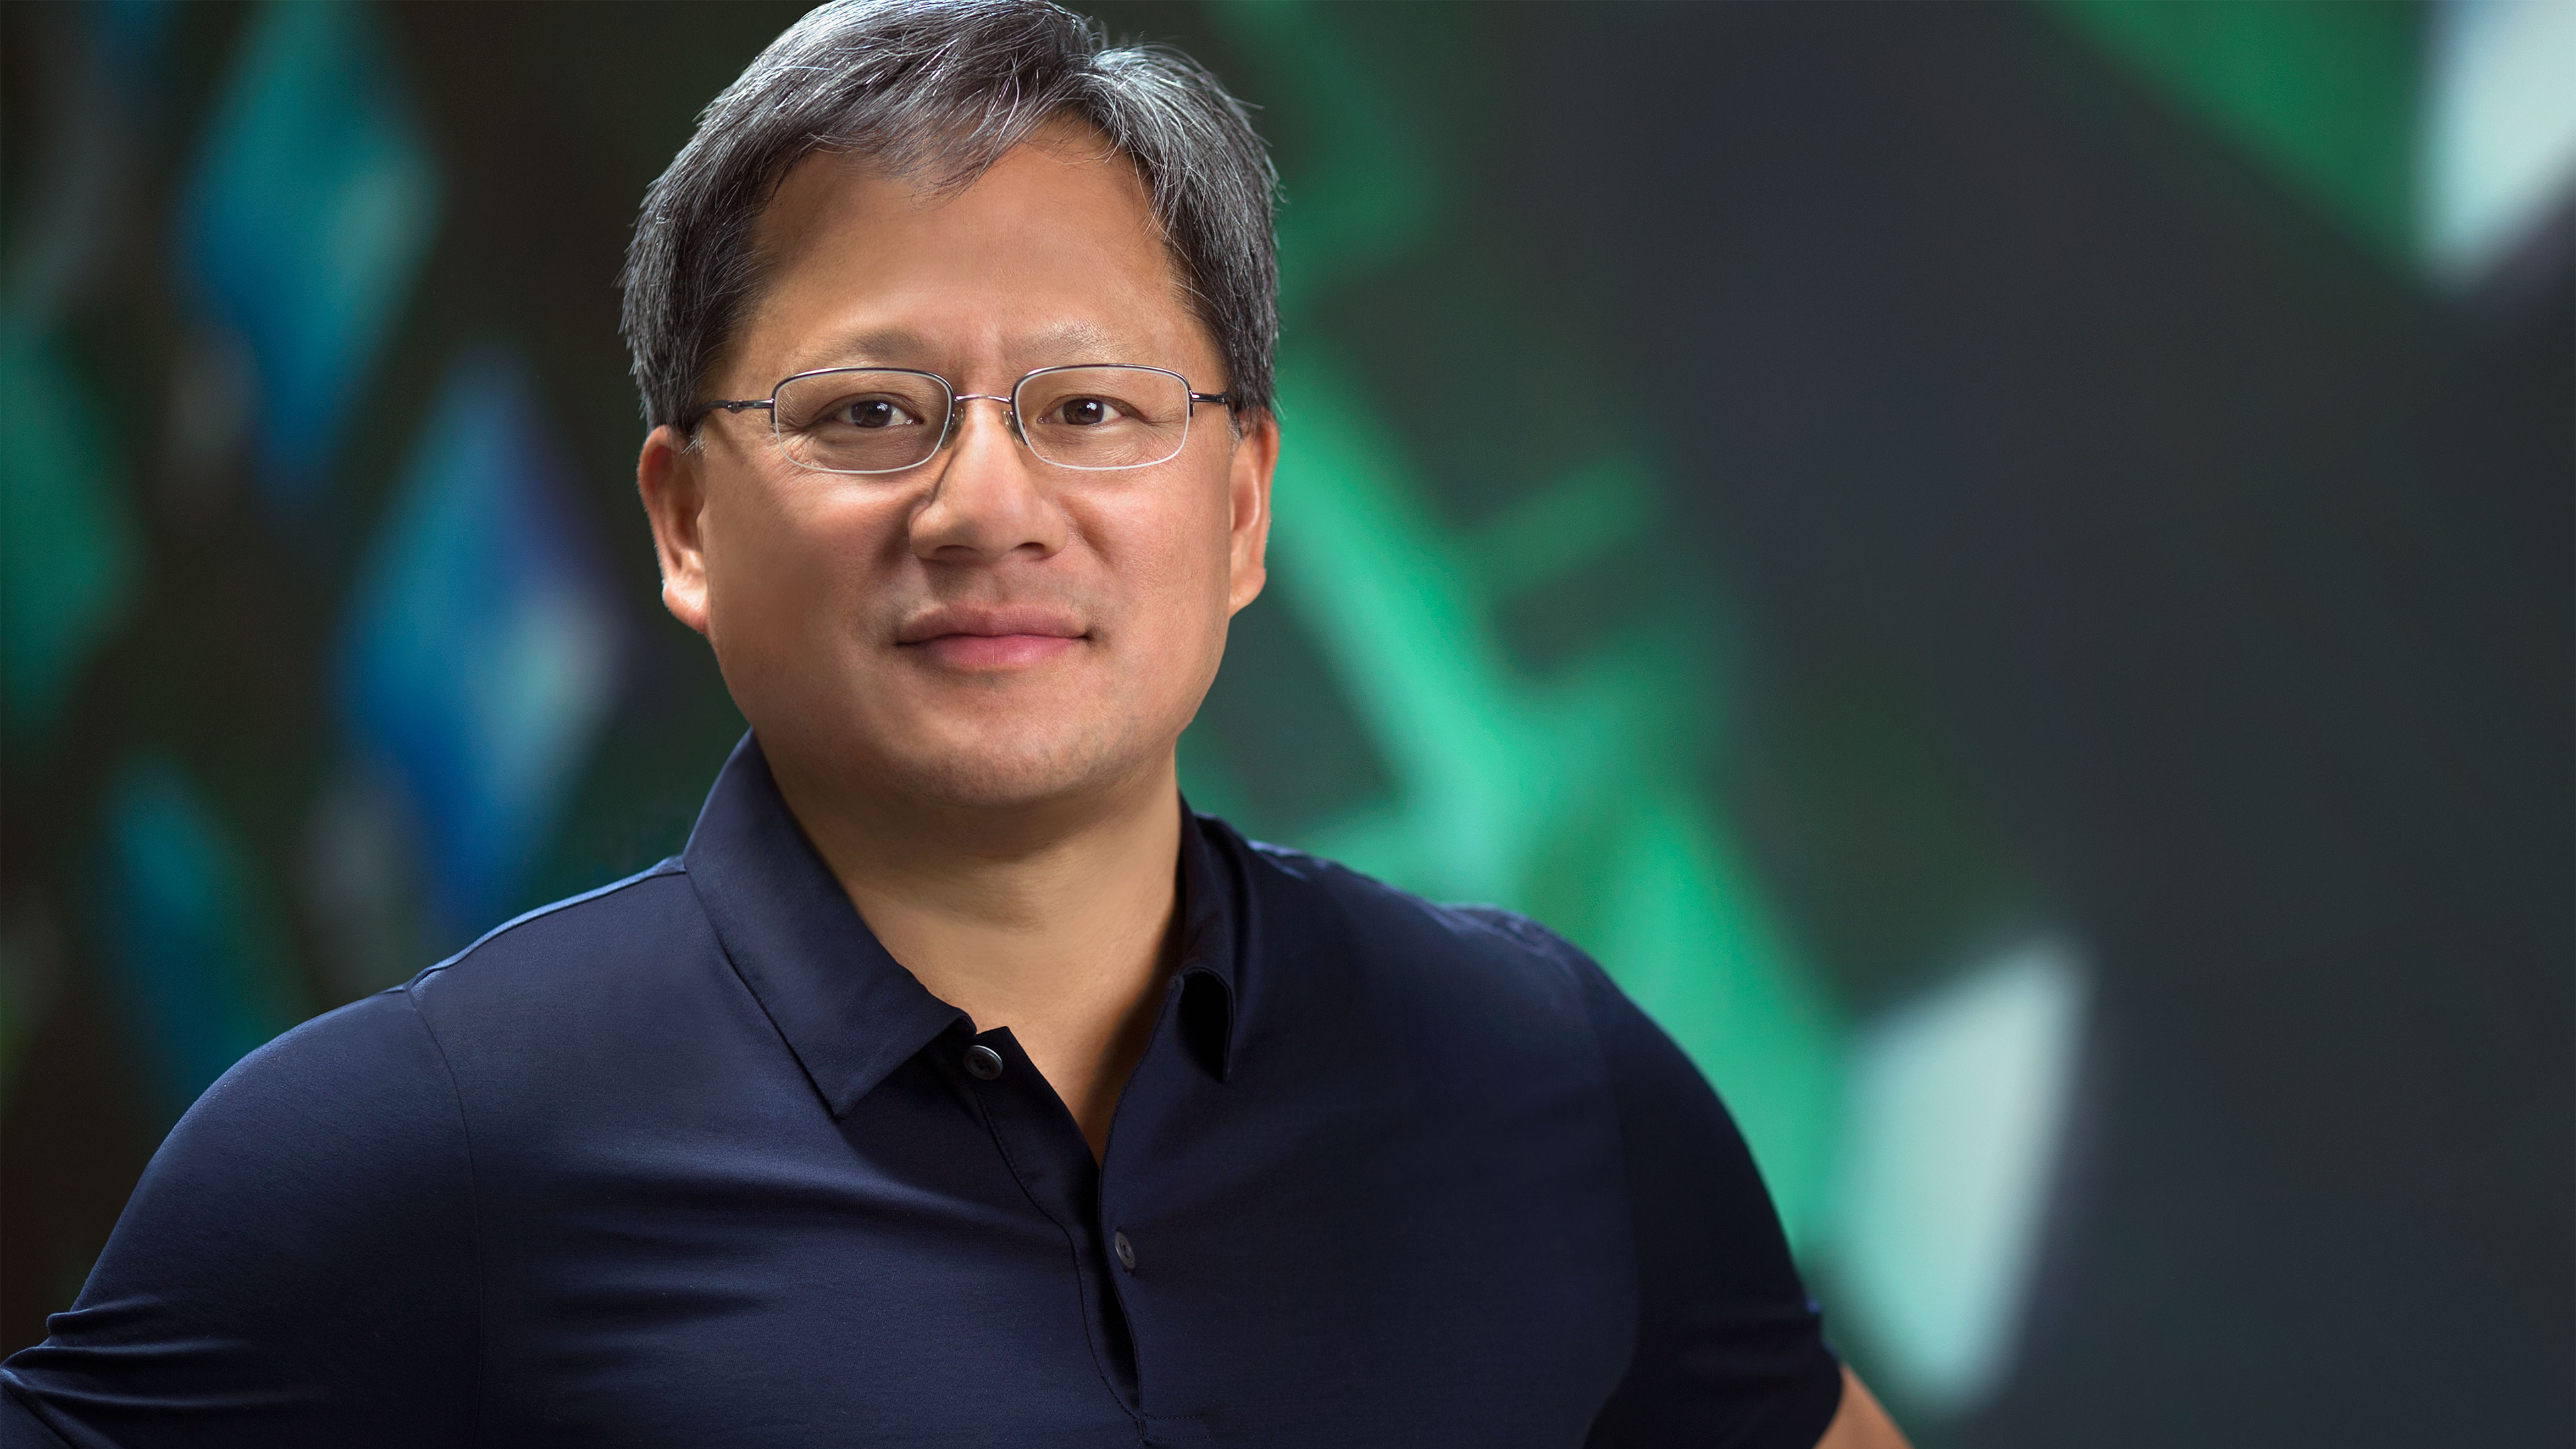 jensen-huang-makes-time-100-list-of-influential-people